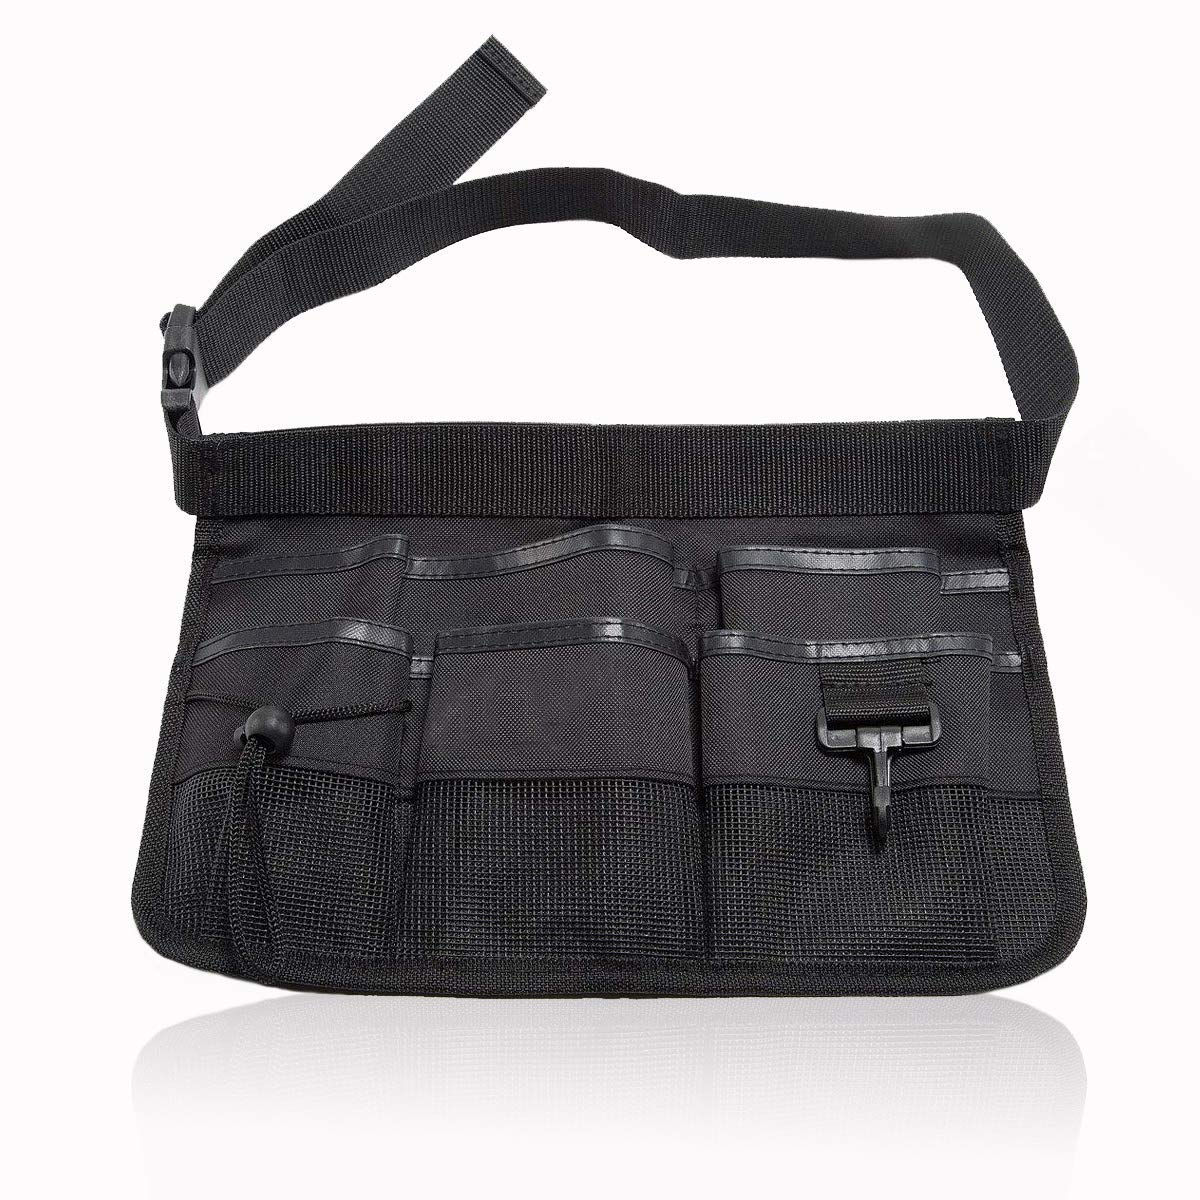 7 Pockets Black Multi-function Tool Waist Bag Belt Heavy Duty Oxford Tool Apron with Adjustable Waist Strap